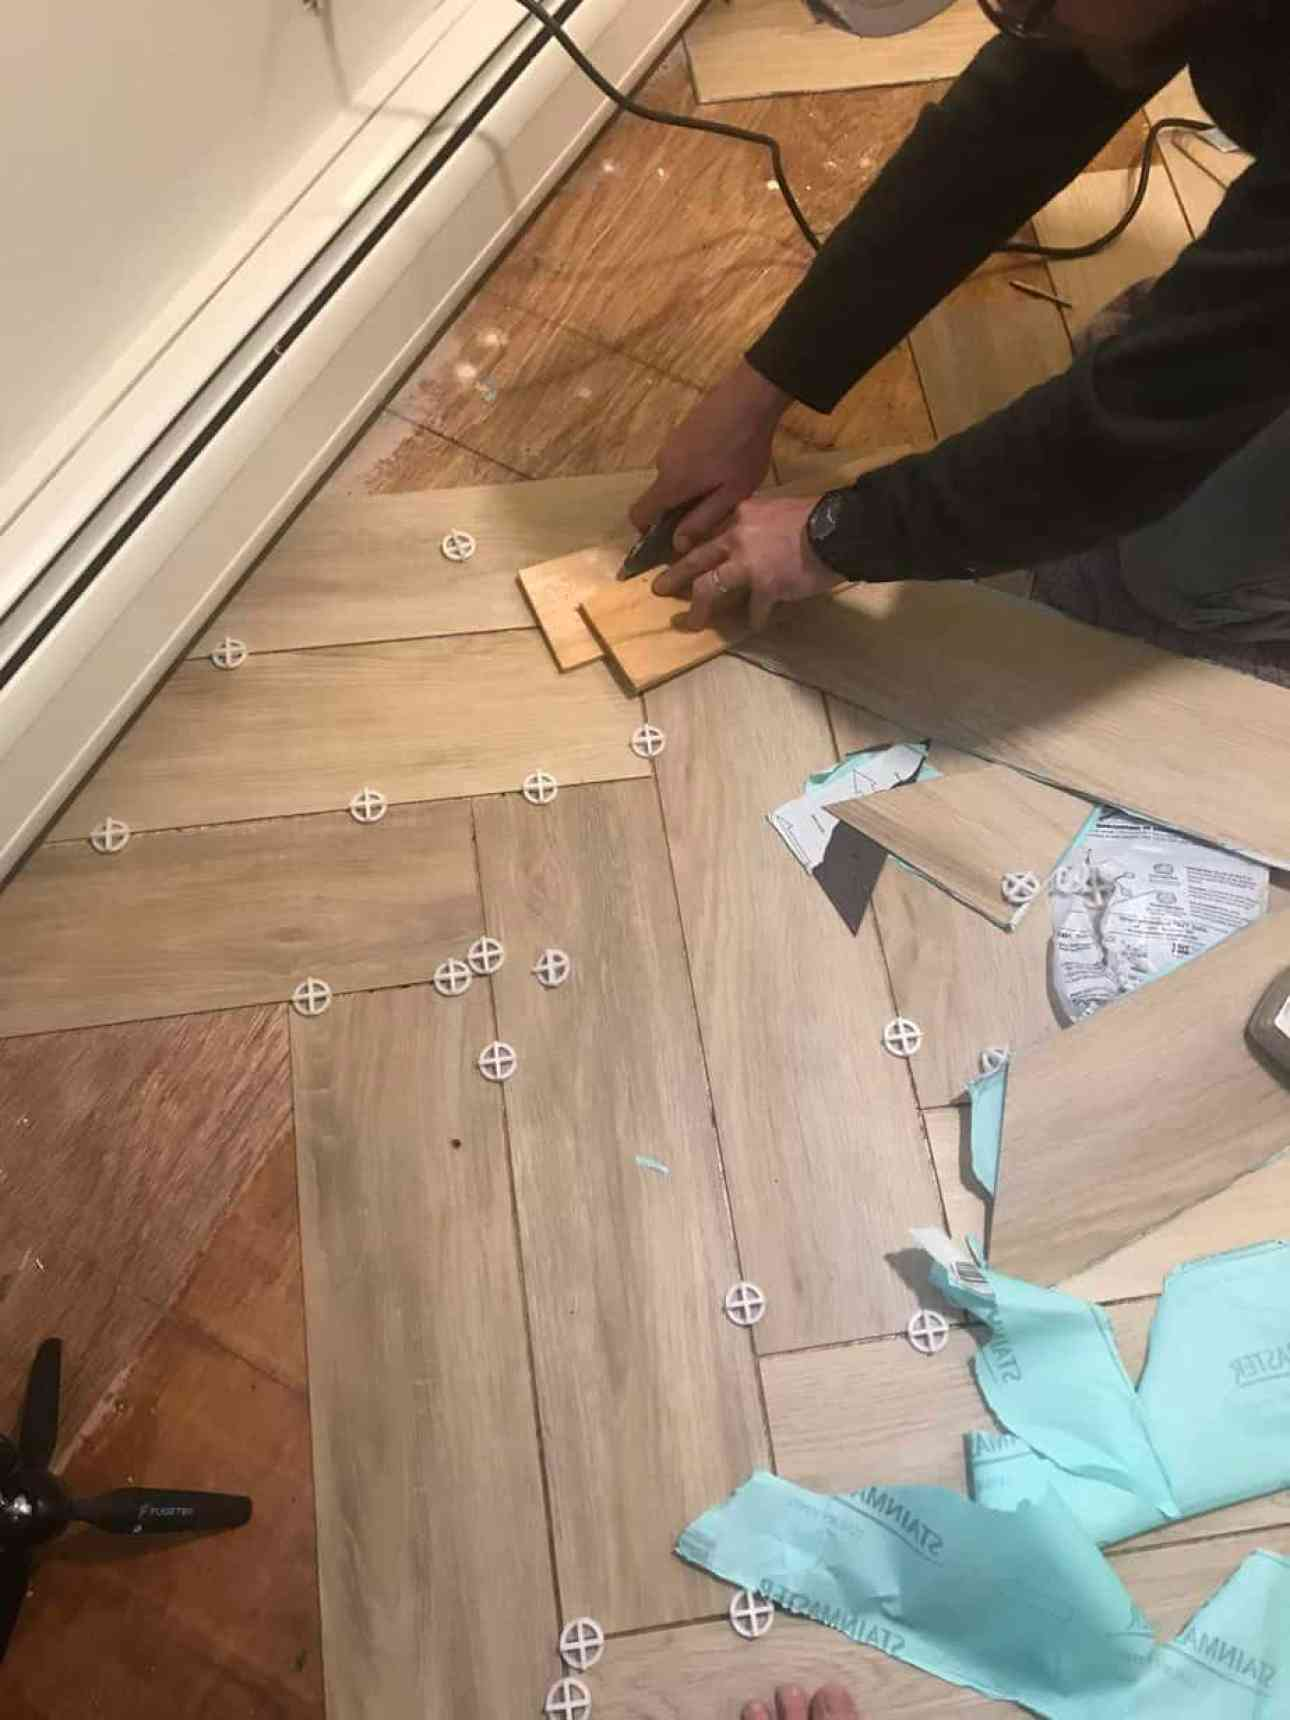 Man cutting peel and stick tile with utility knife.